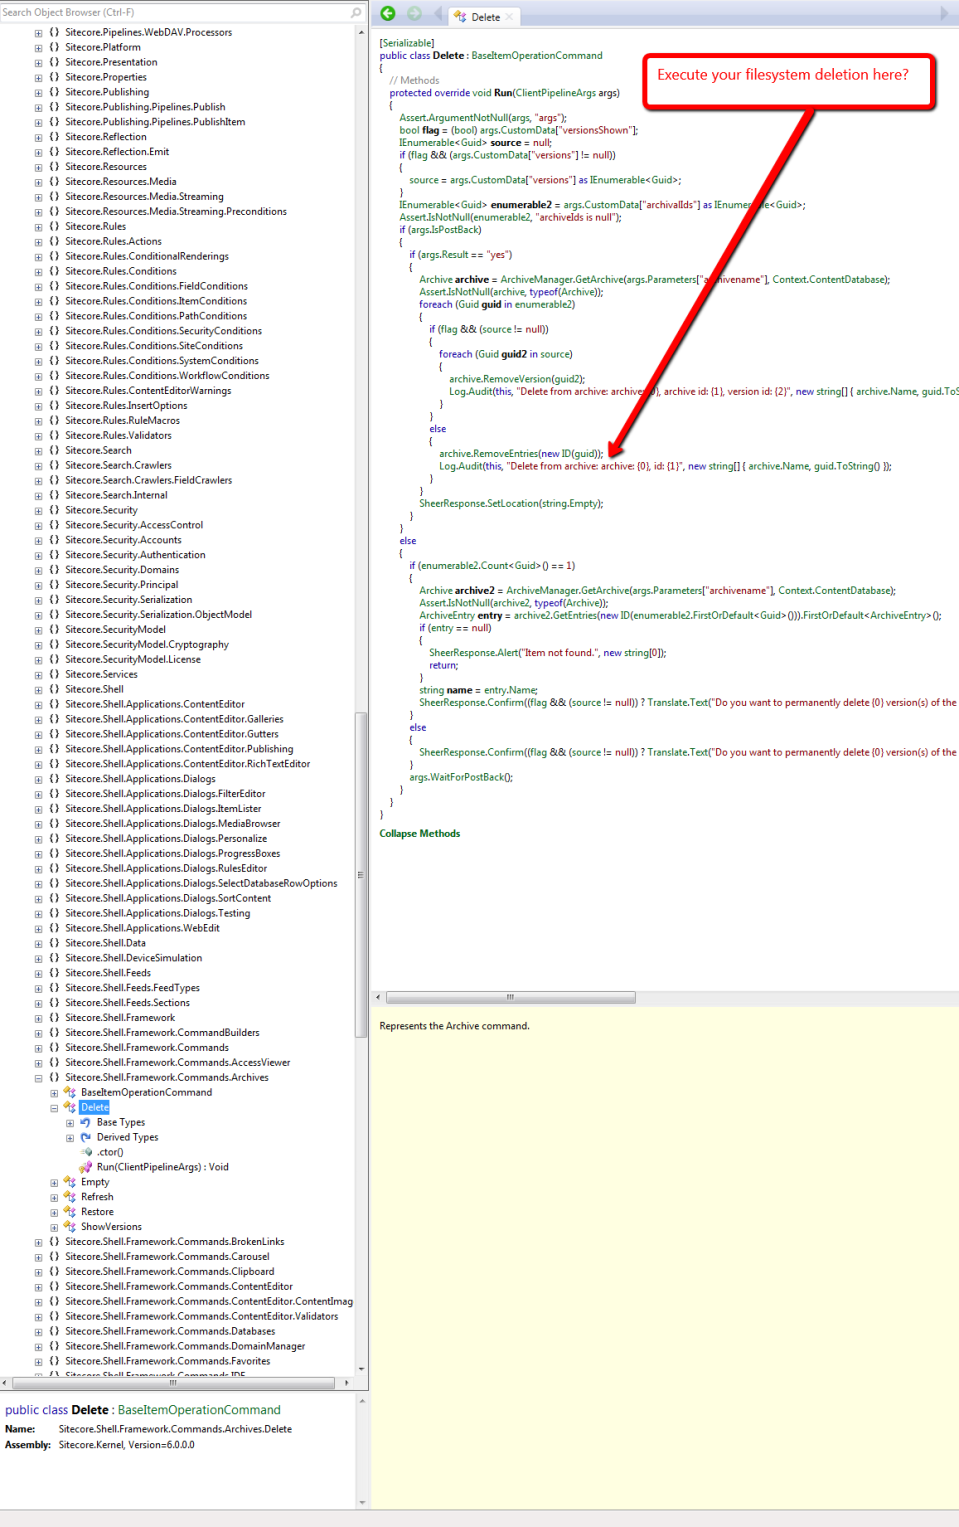 Sitecore.Shell.Framework.Commands.Archives.Delete